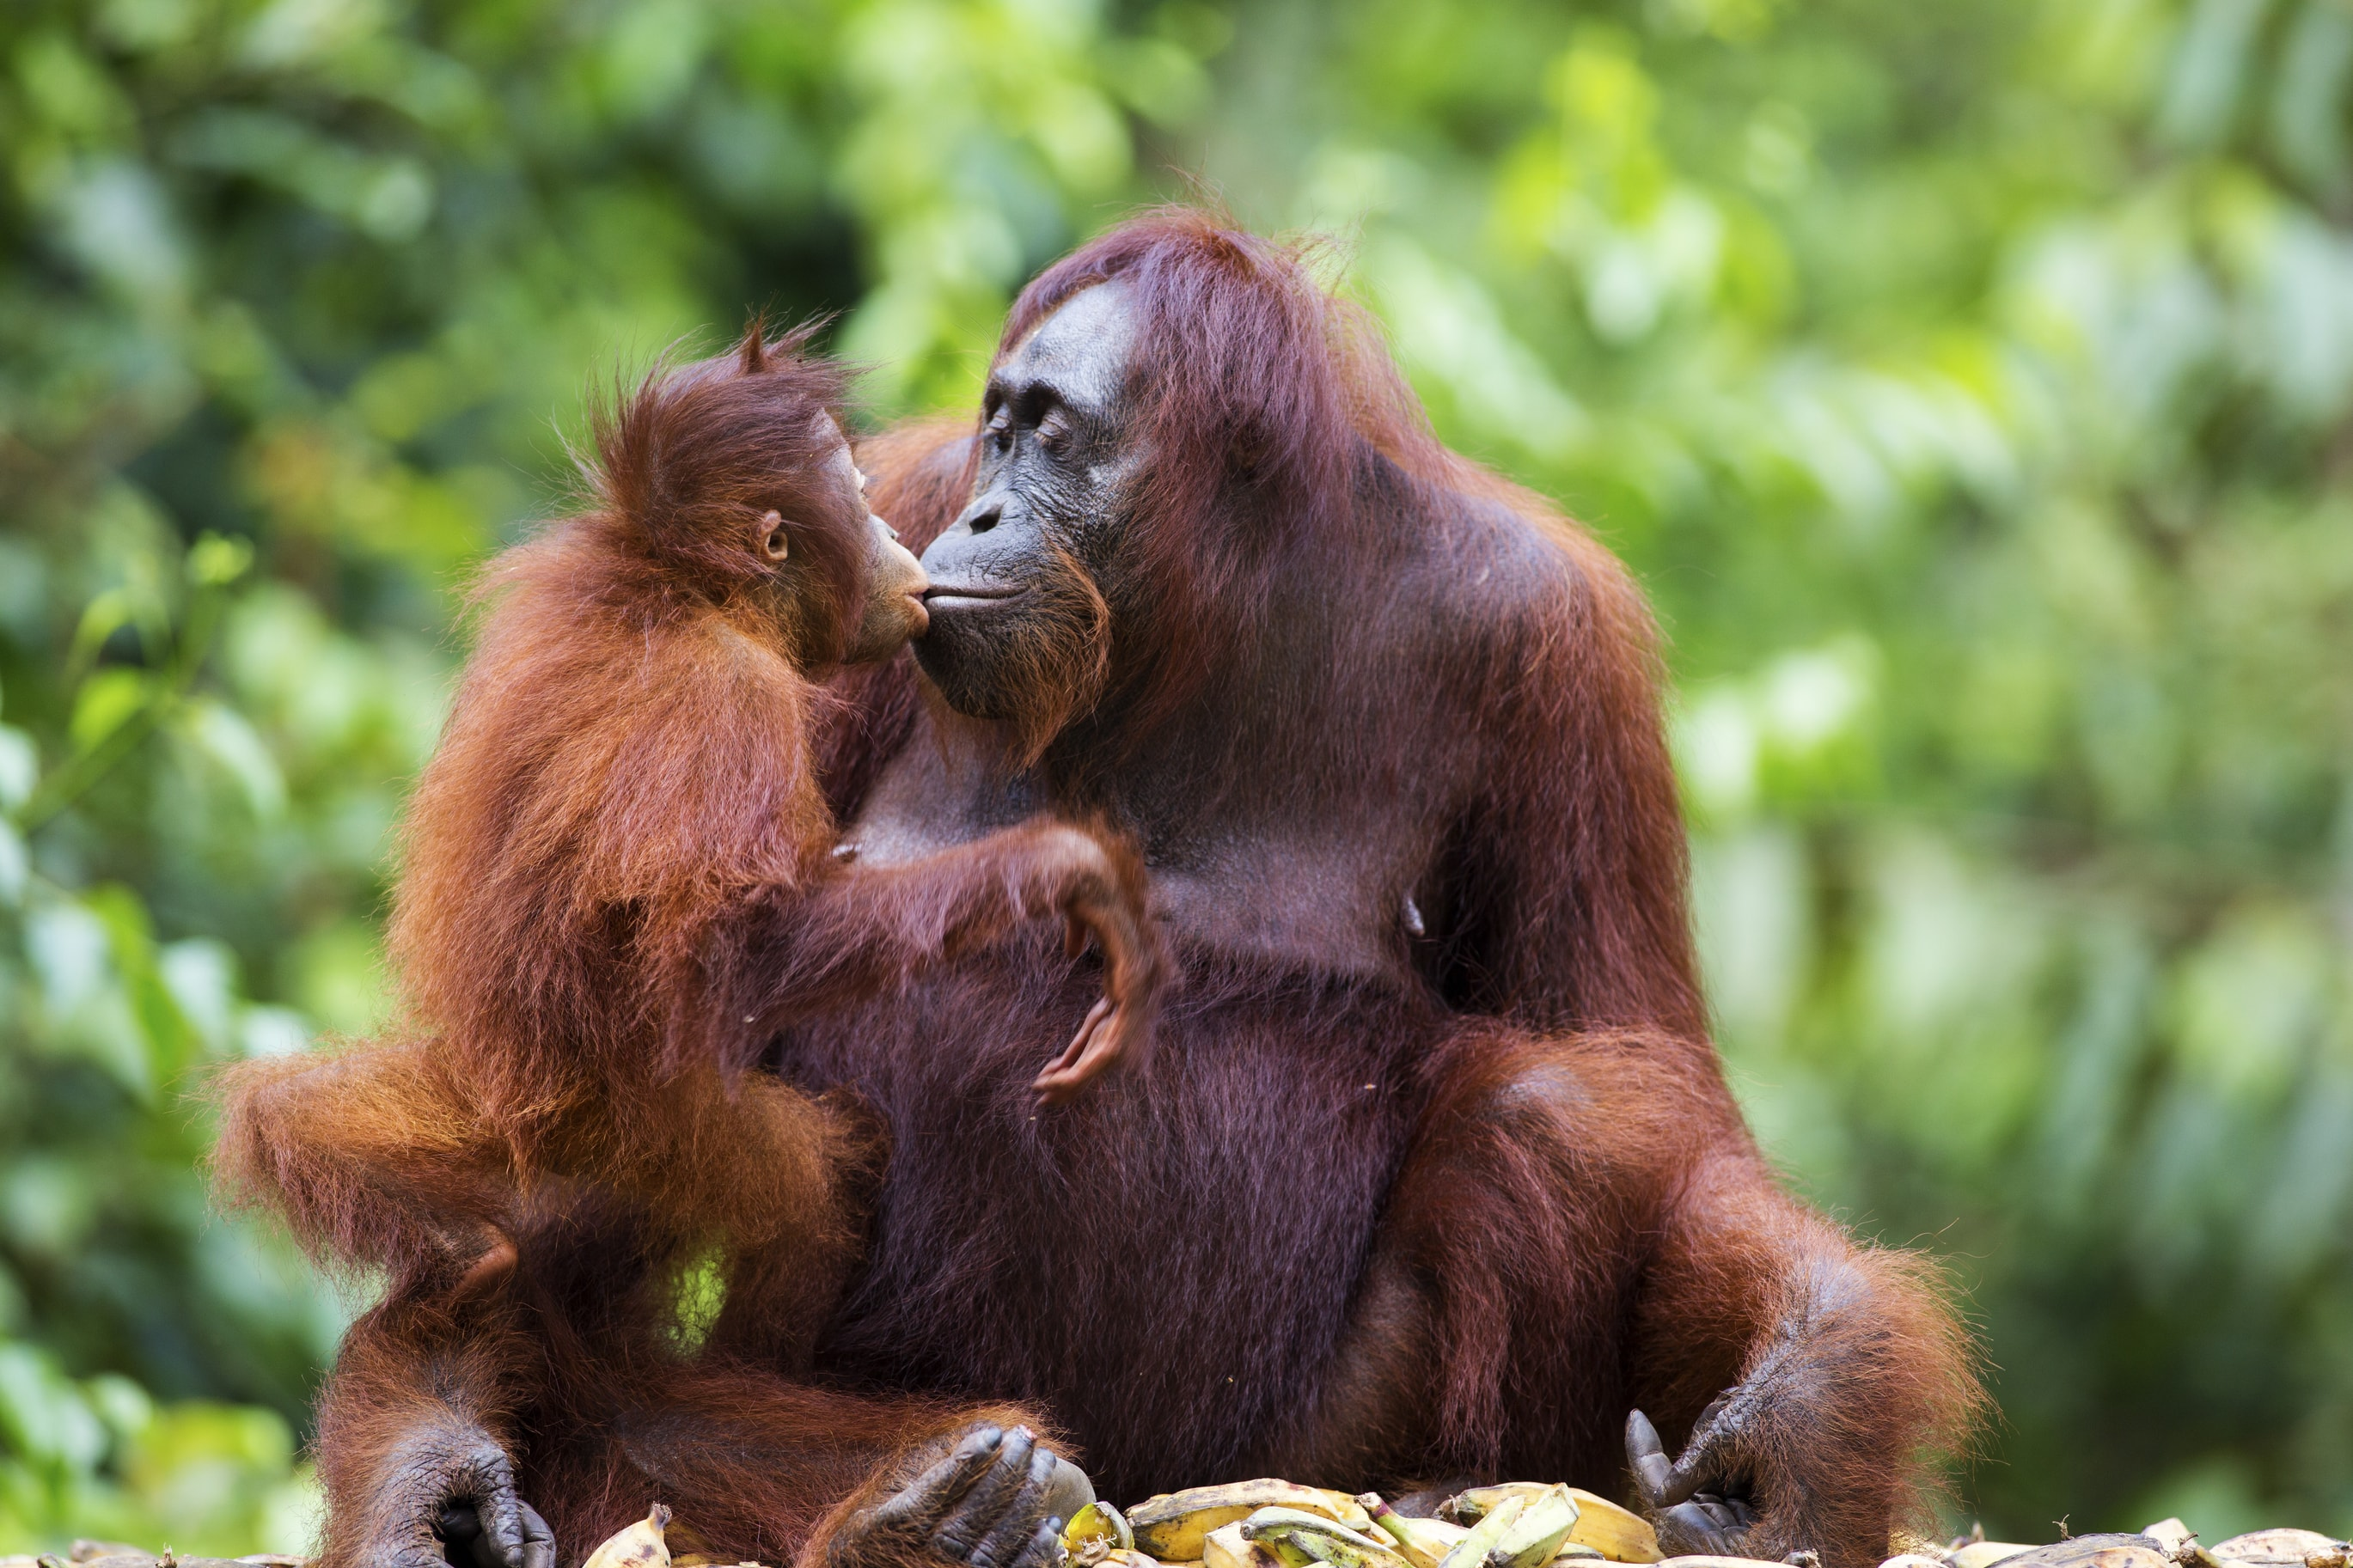 Orangutan-Mother-Baby-Kissing